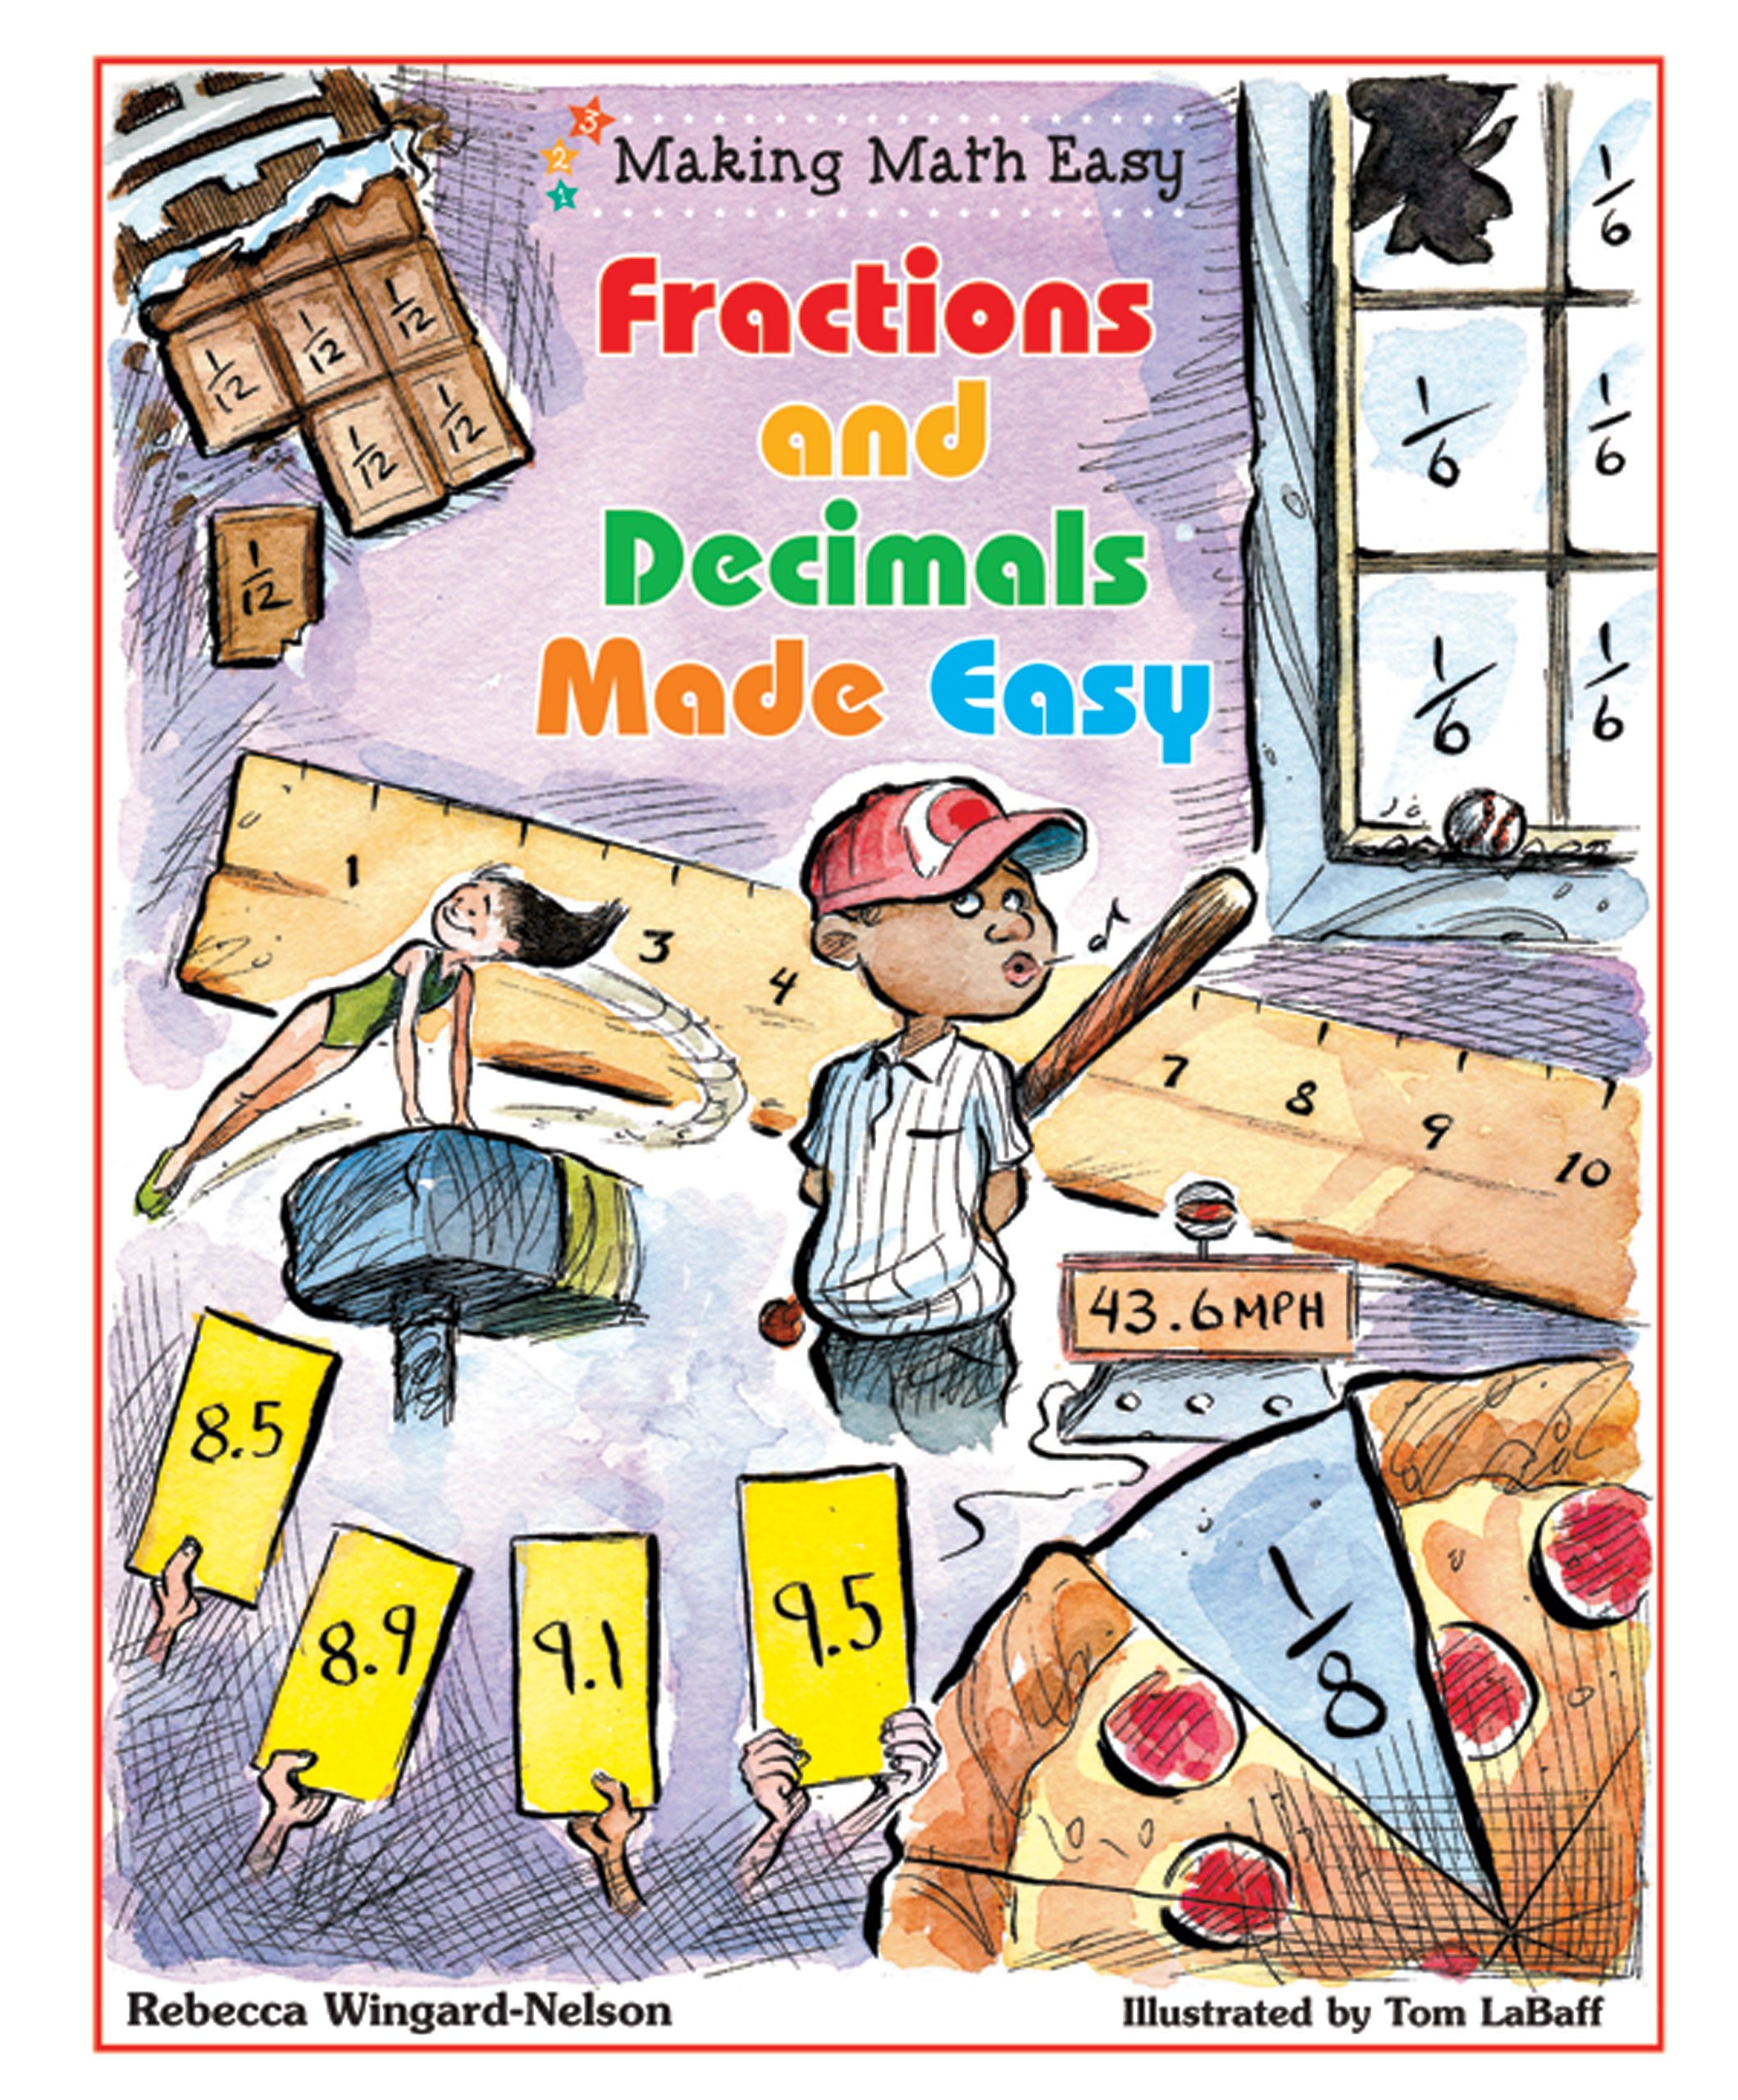 fractions-and-decimals-made-easy-making-math-easy